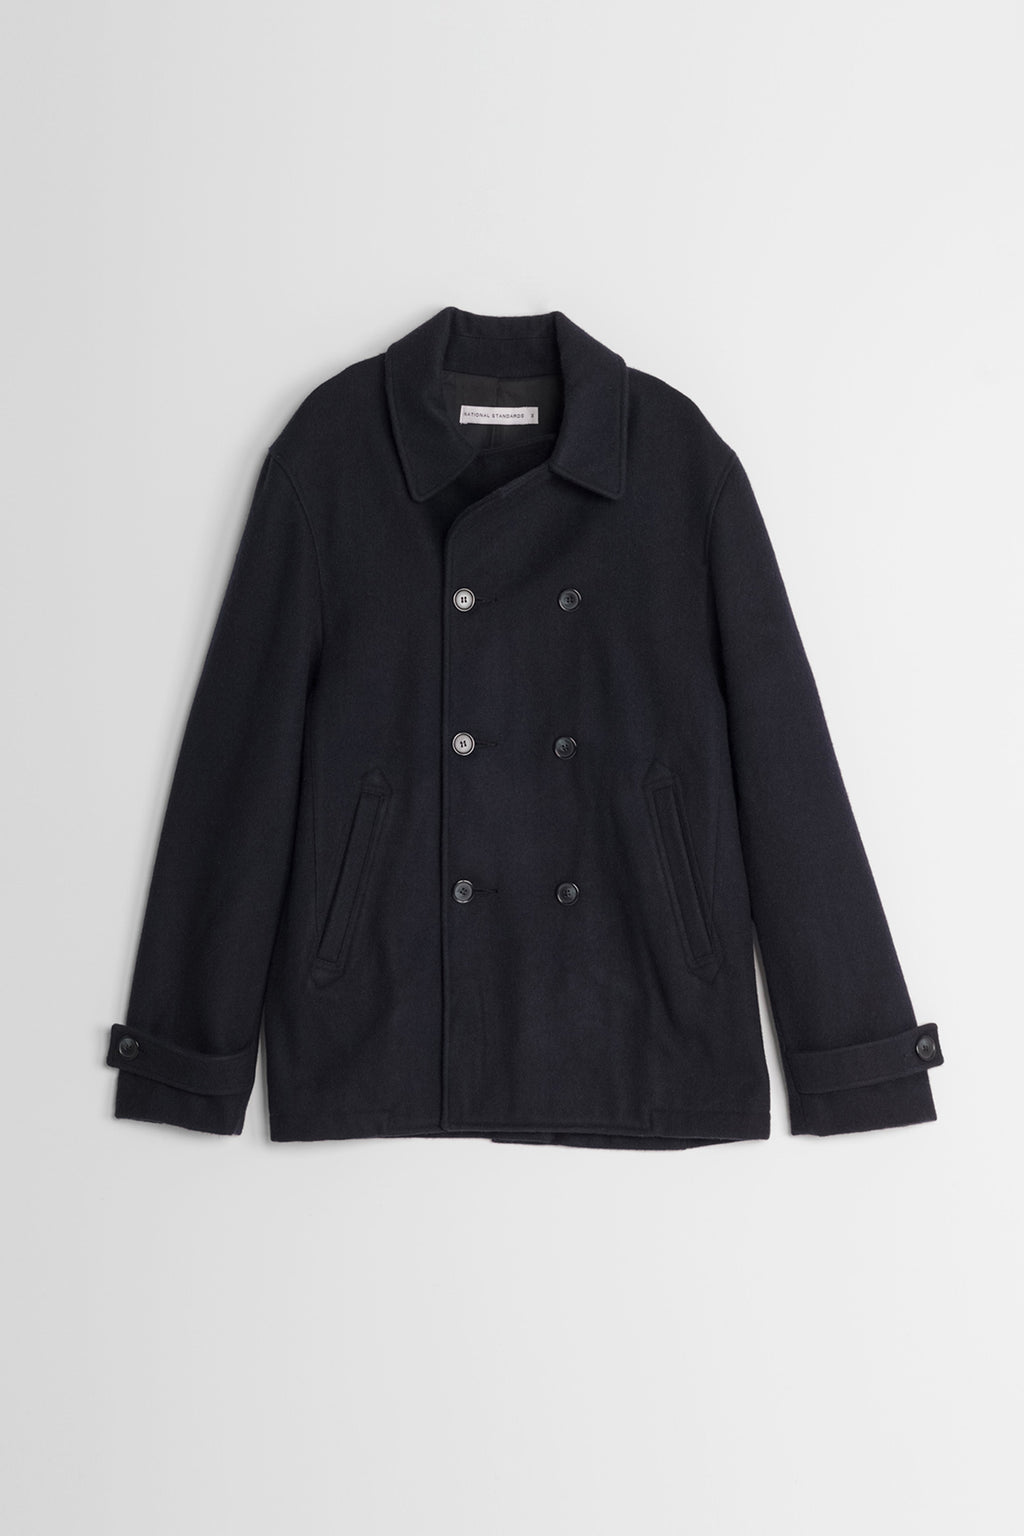 Japanese Melton Pea Coat in Navy